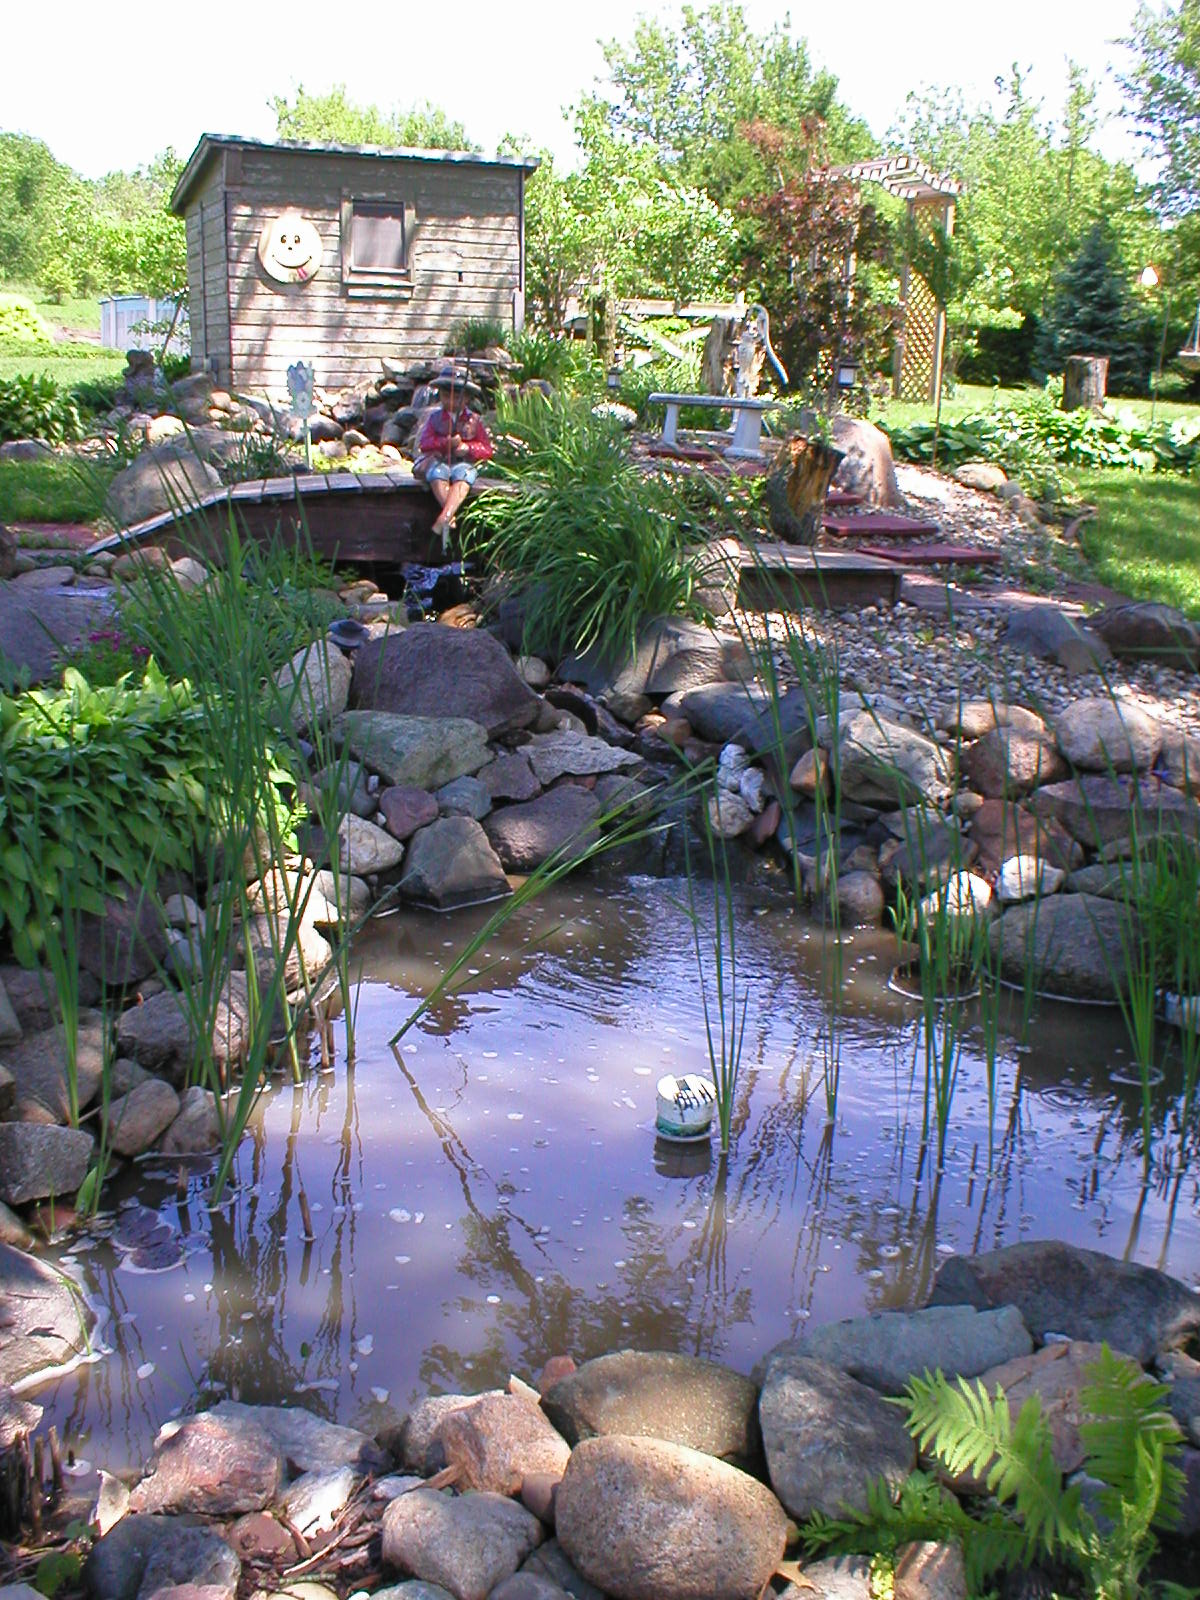 I Helped This Home Owner Design This Pond. The Homeowner Did All Of The  Work. It Is A Series Of Small Waterfall Pools. The Night Before The  Pictures ...